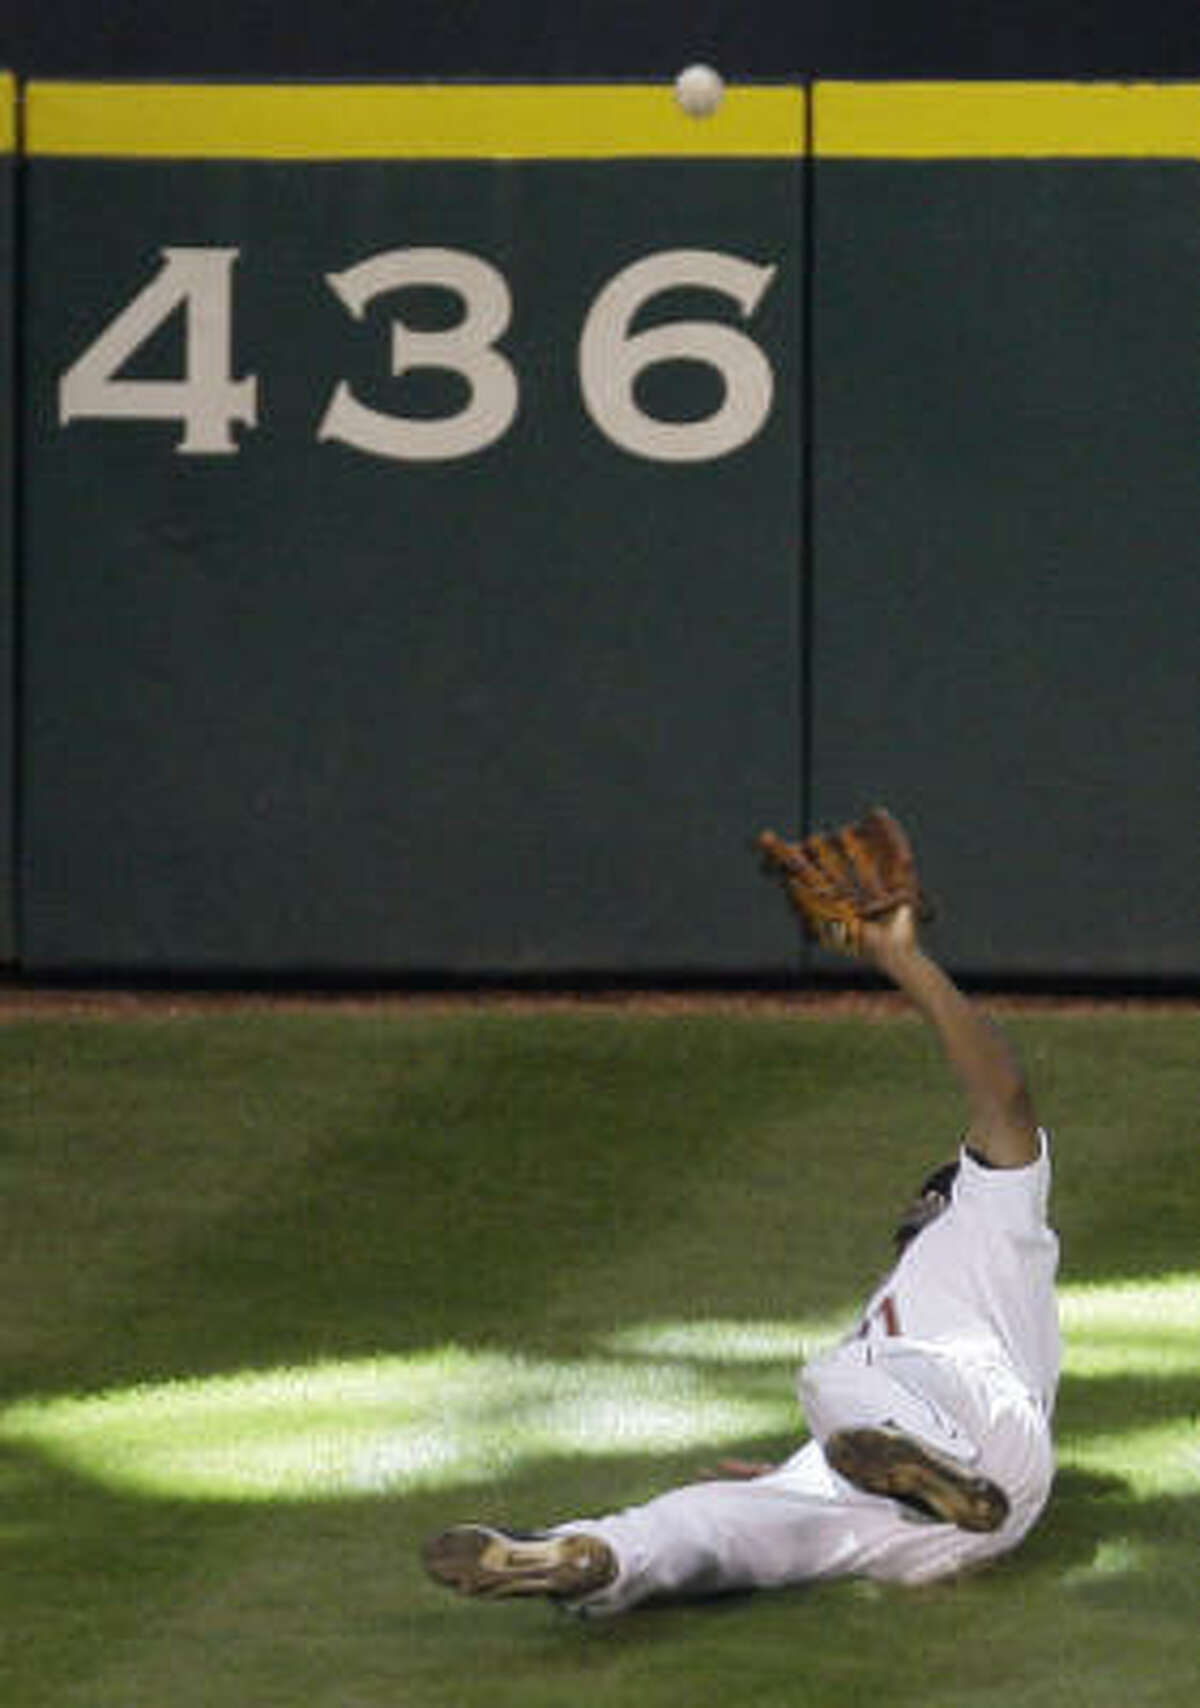 Michael Bourn - On Golden Hill Michael Bourn won Gold Gloves for his center field play in Houston in 2009 and 2010, and his deftness of Tal's Hill had something to do with those awards. His most memorable catch was this one against the Cubs'Micah Hoffpauir when Bourn fell down and still caught the ball while flat on his back.